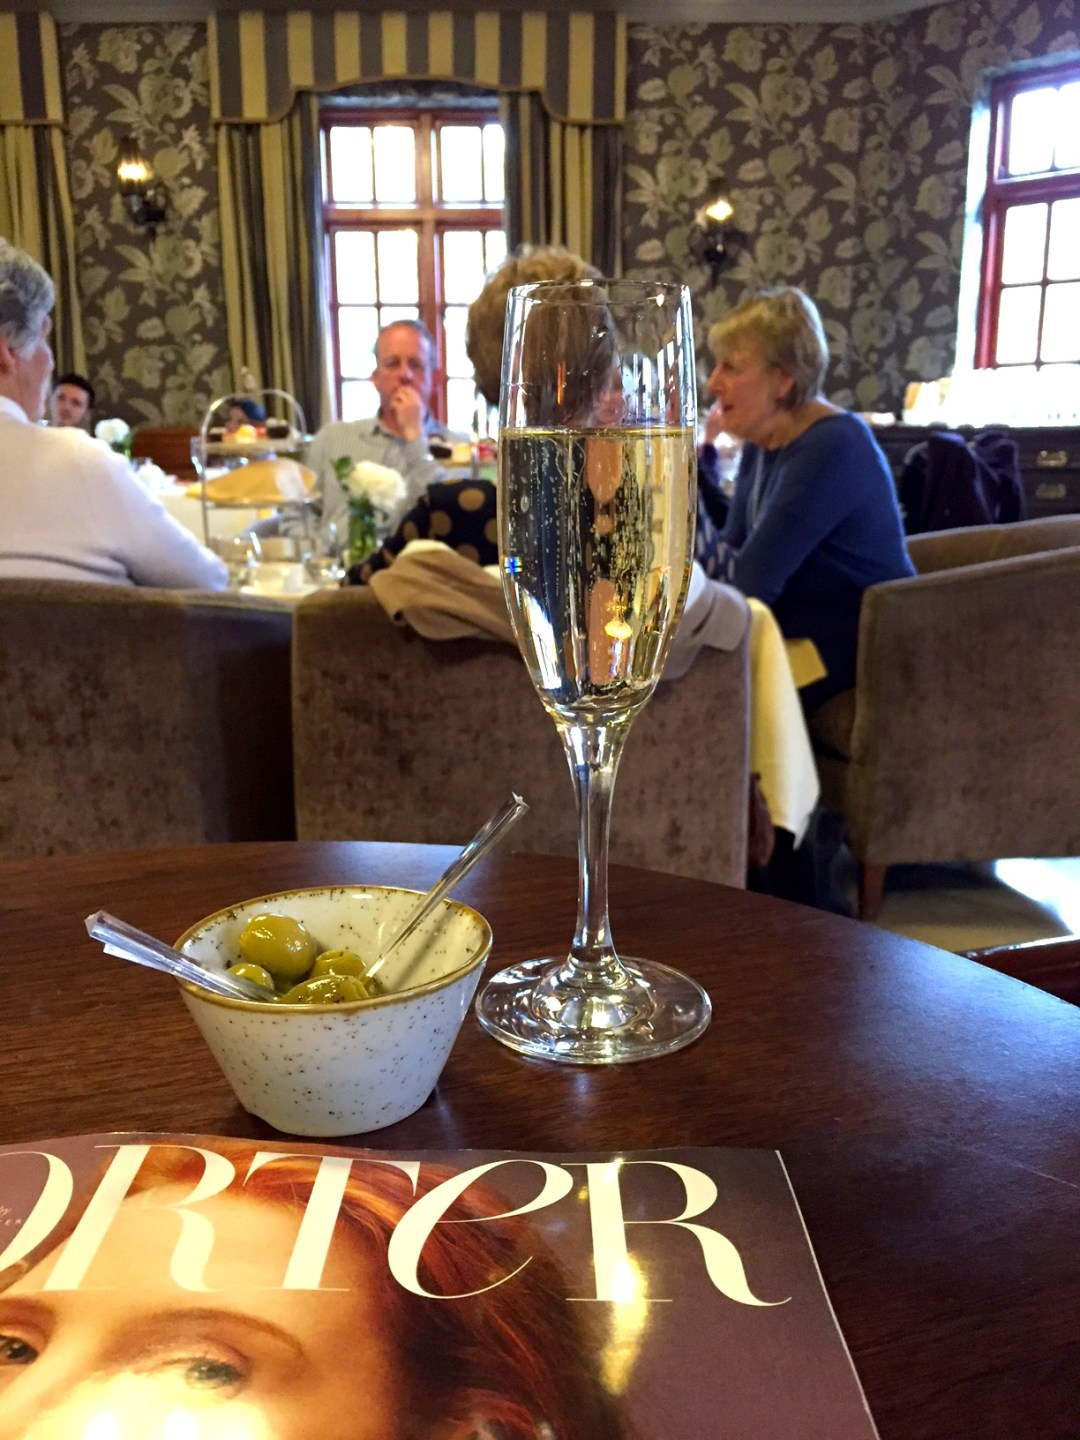 pennyhill park review